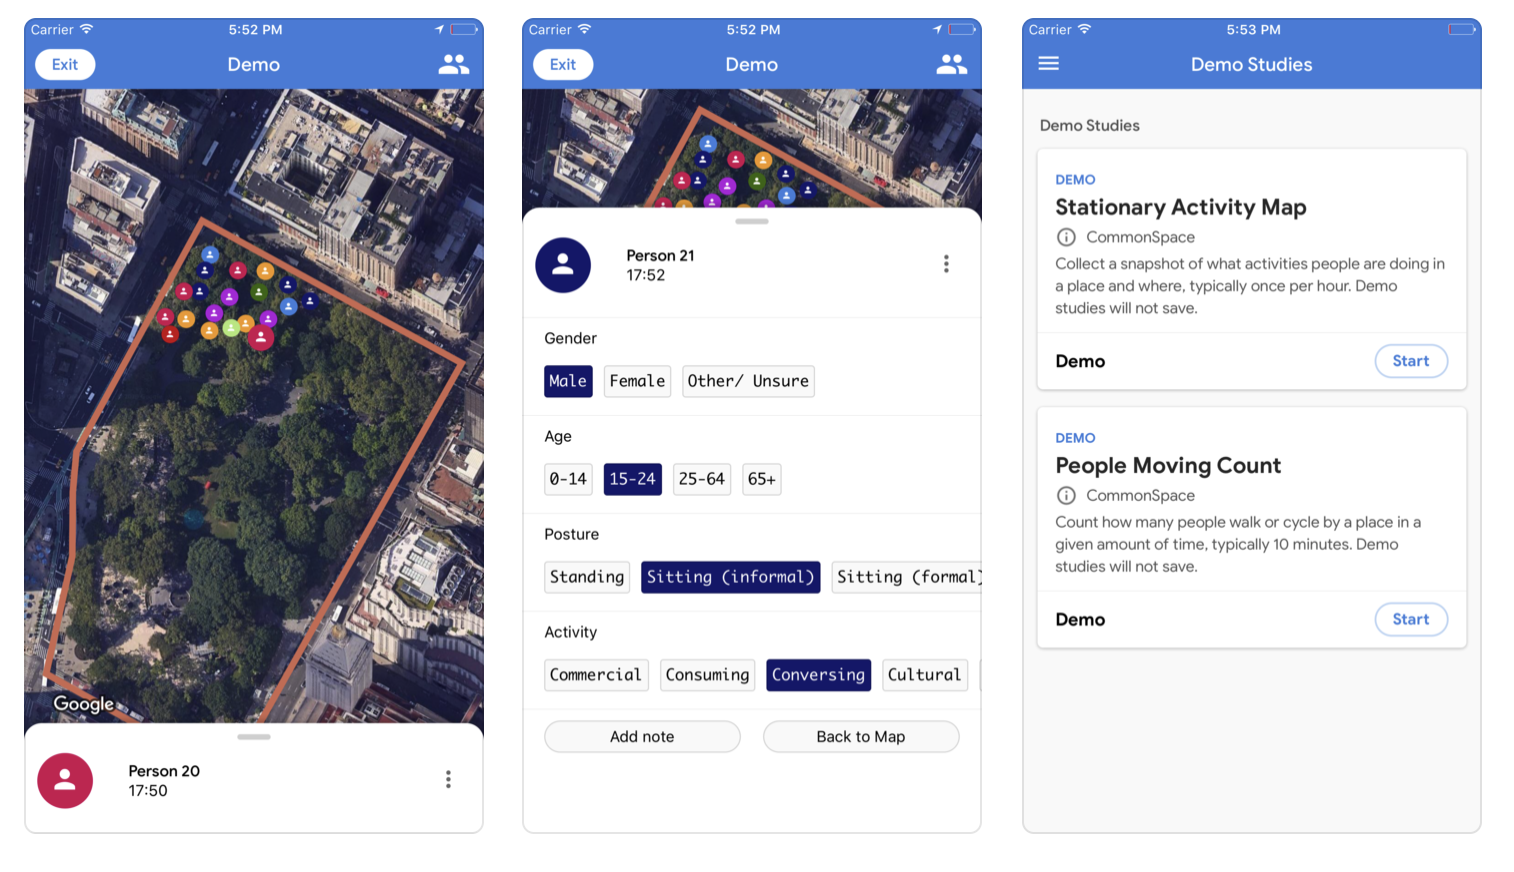 Sidewalk Labs launches an app to crowdsource public space surveys